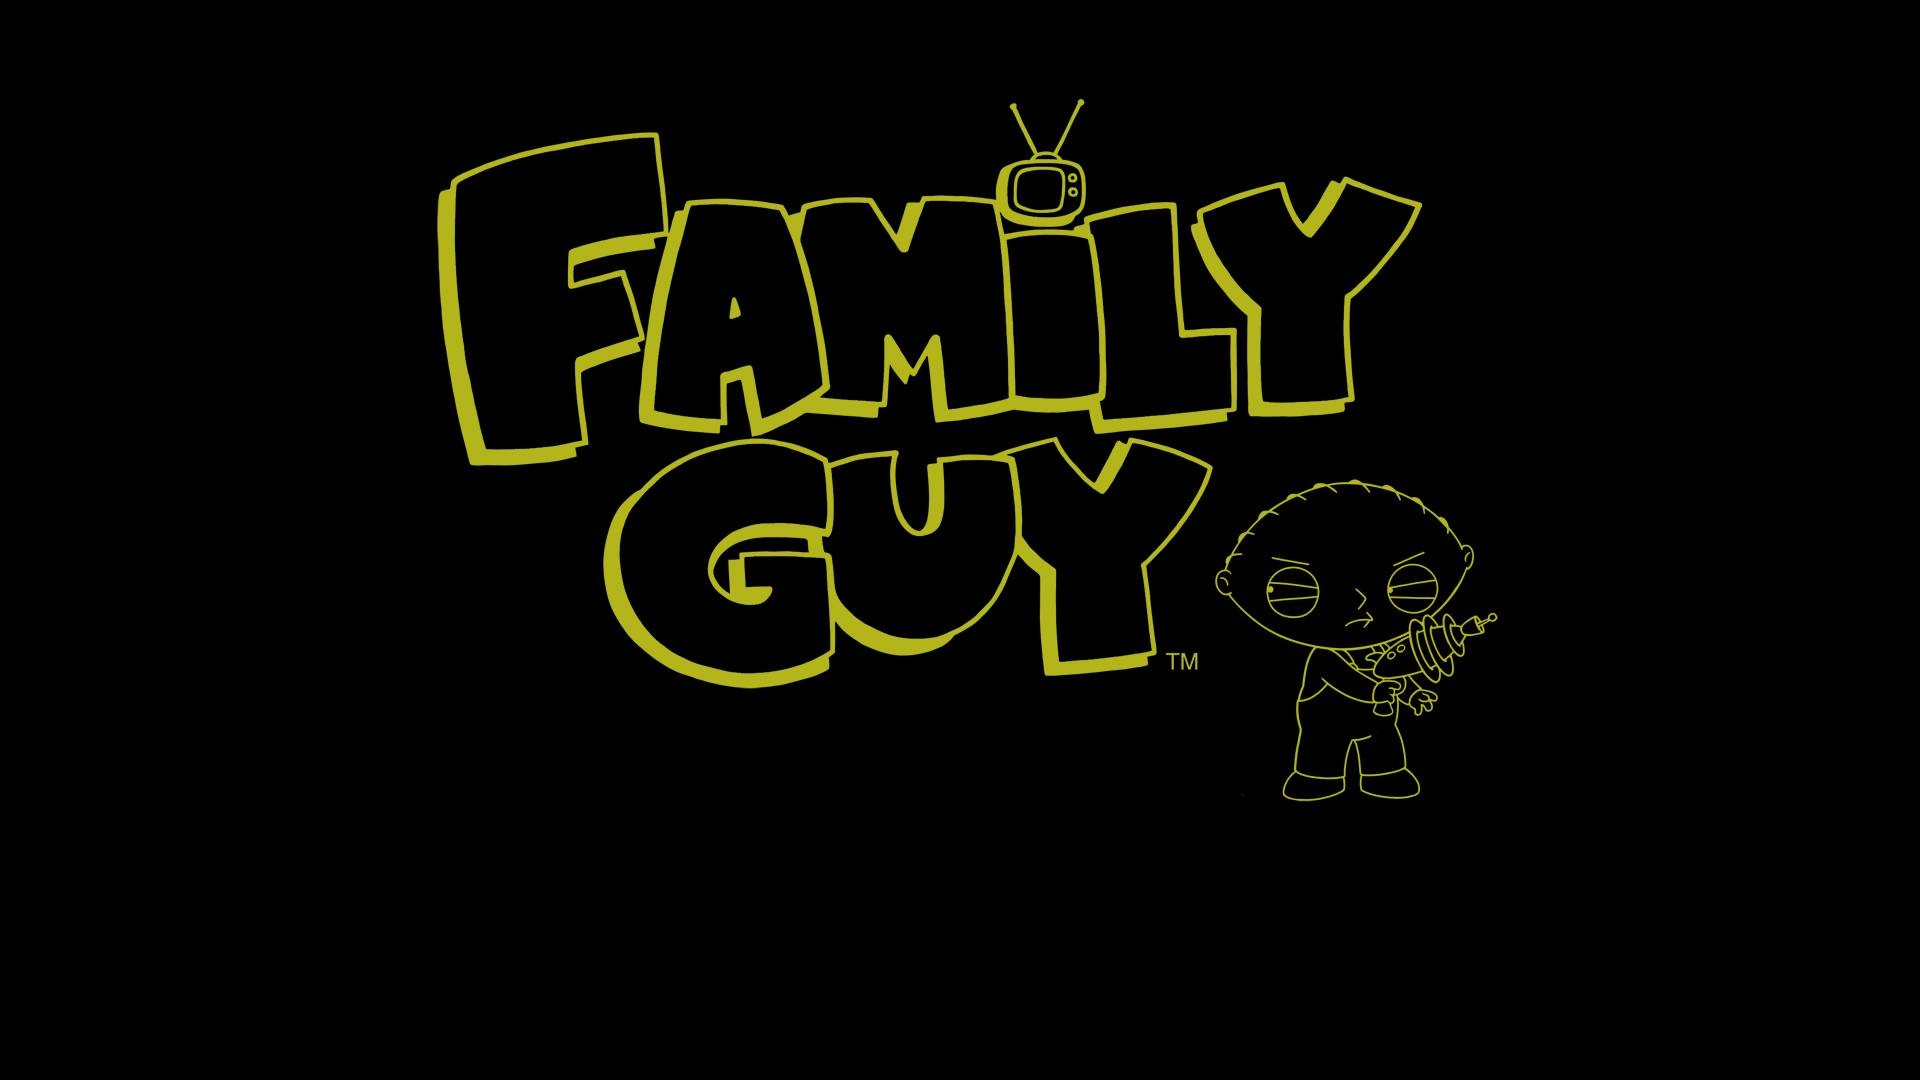 1920x1080 Stewie Wallpaper - Family Guy Wallpaper